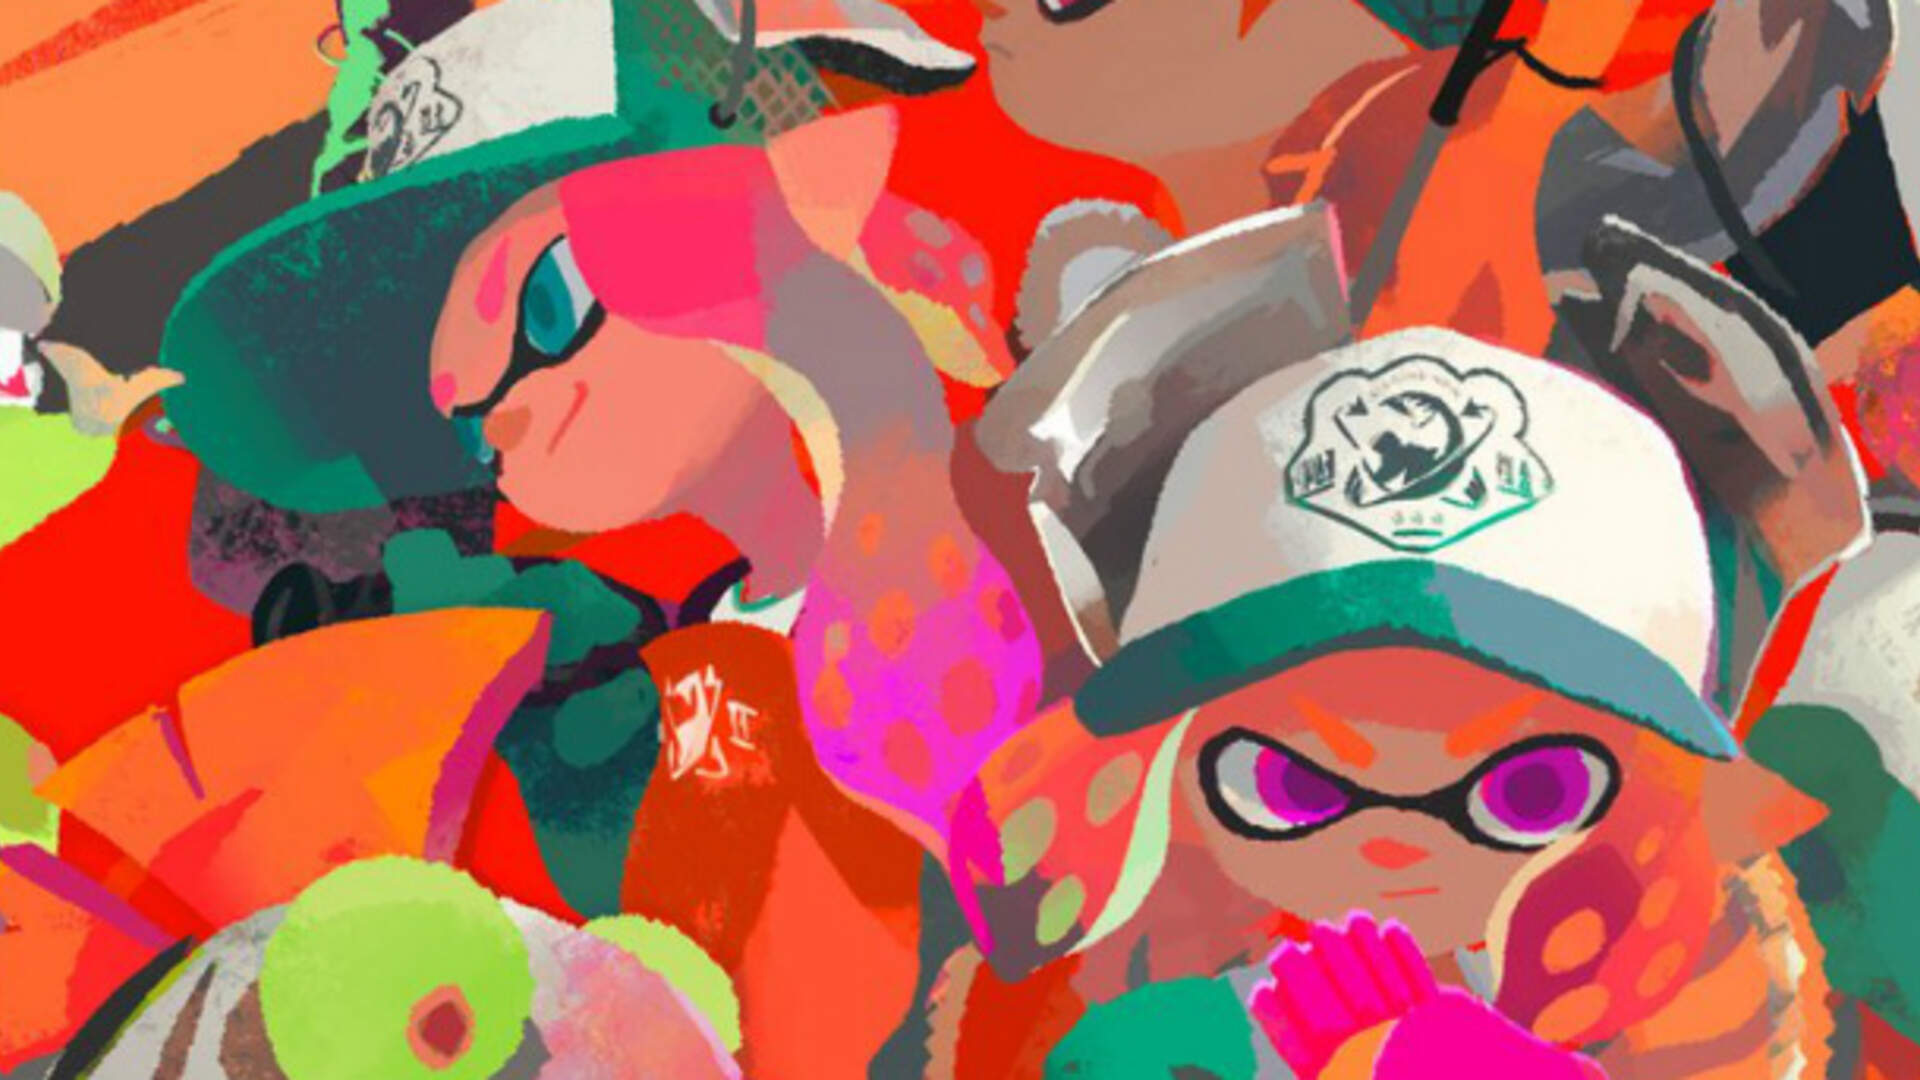 Splatoon 2 Coming July 21 With New Mode and Amiibos